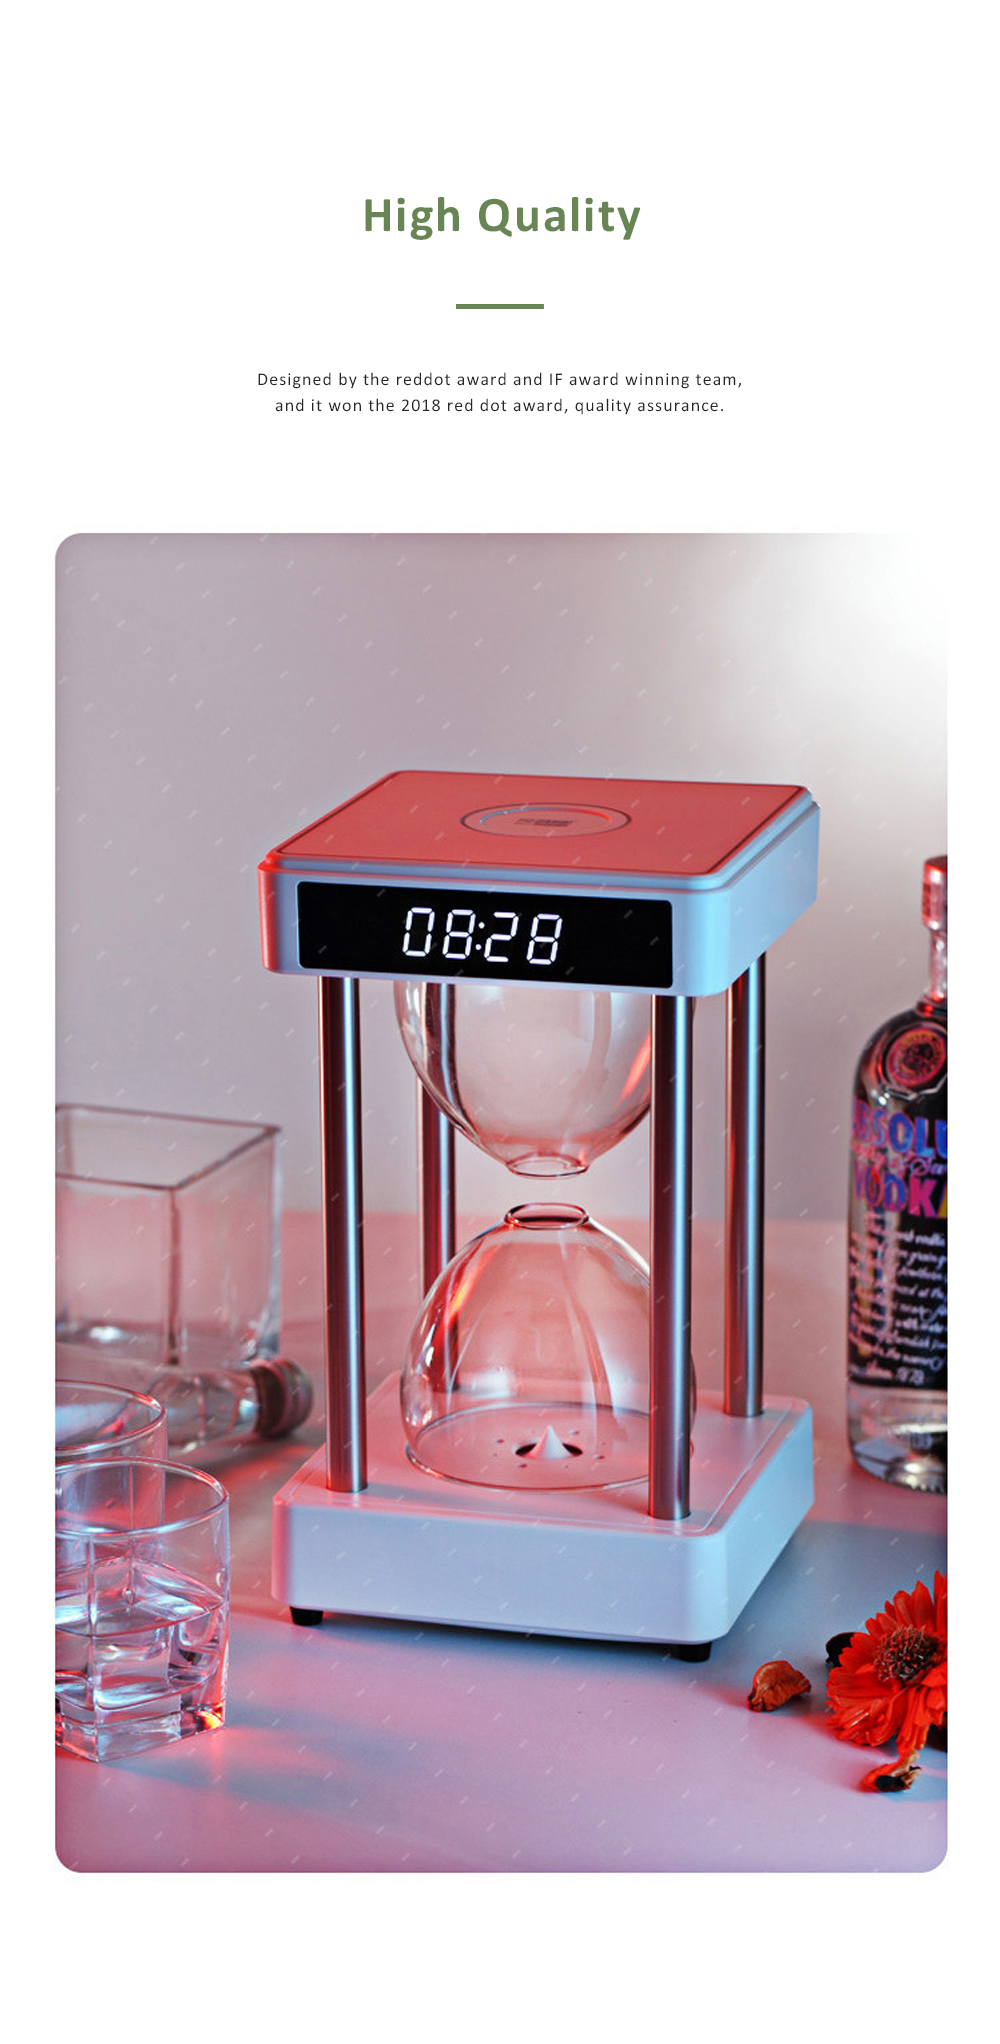 Tinkleo Air Purifier Anti-Gravity Time Hourglass with Water Drops Back Flow Desktop Humidification Deodorization Decoration Gift 4